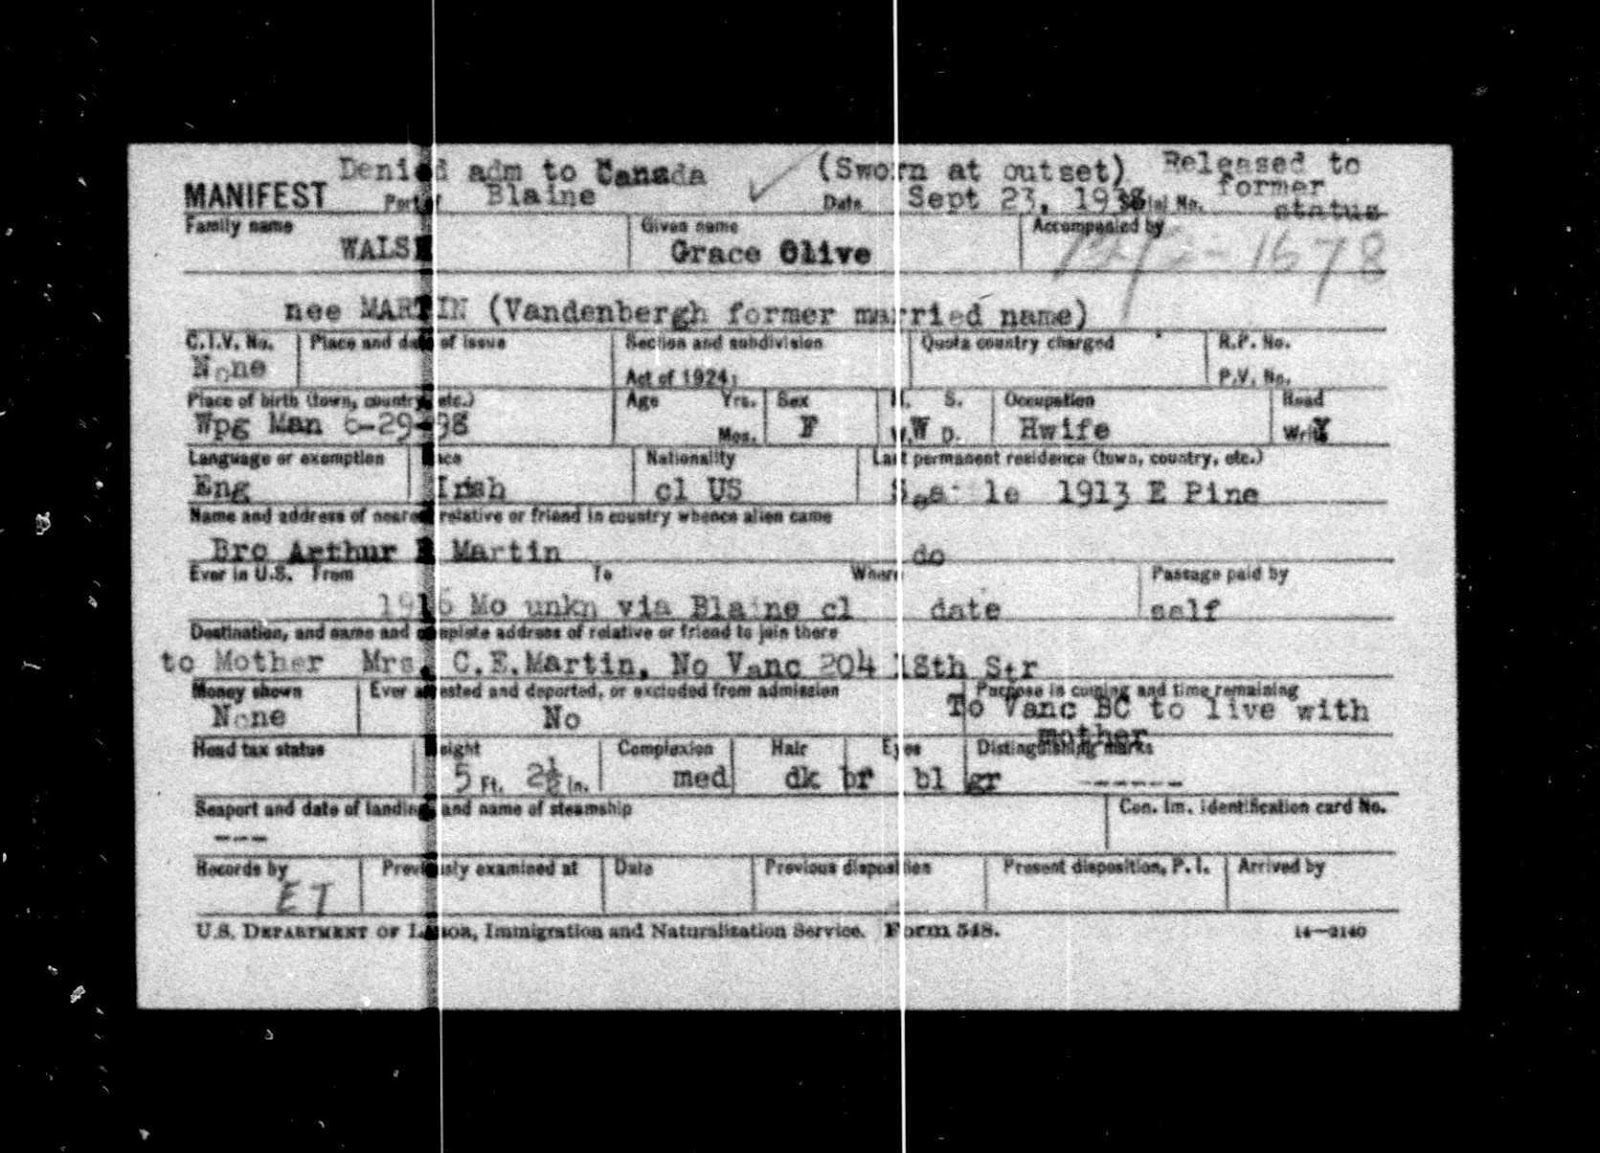 """Ancestry.com, """"Border Crossings: From Canada to U.S., 1895-1956,"""" database on-line, Ancestry.com(http://www.ancestry.com/ : accessed 3 Feb 2015), entry for Grace Olive Walsh, 23 Sep 1938; Original data: Records of the Immigration and Naturalization Service, RG 85. Washington, D.C.: National Archives and Records Administration."""